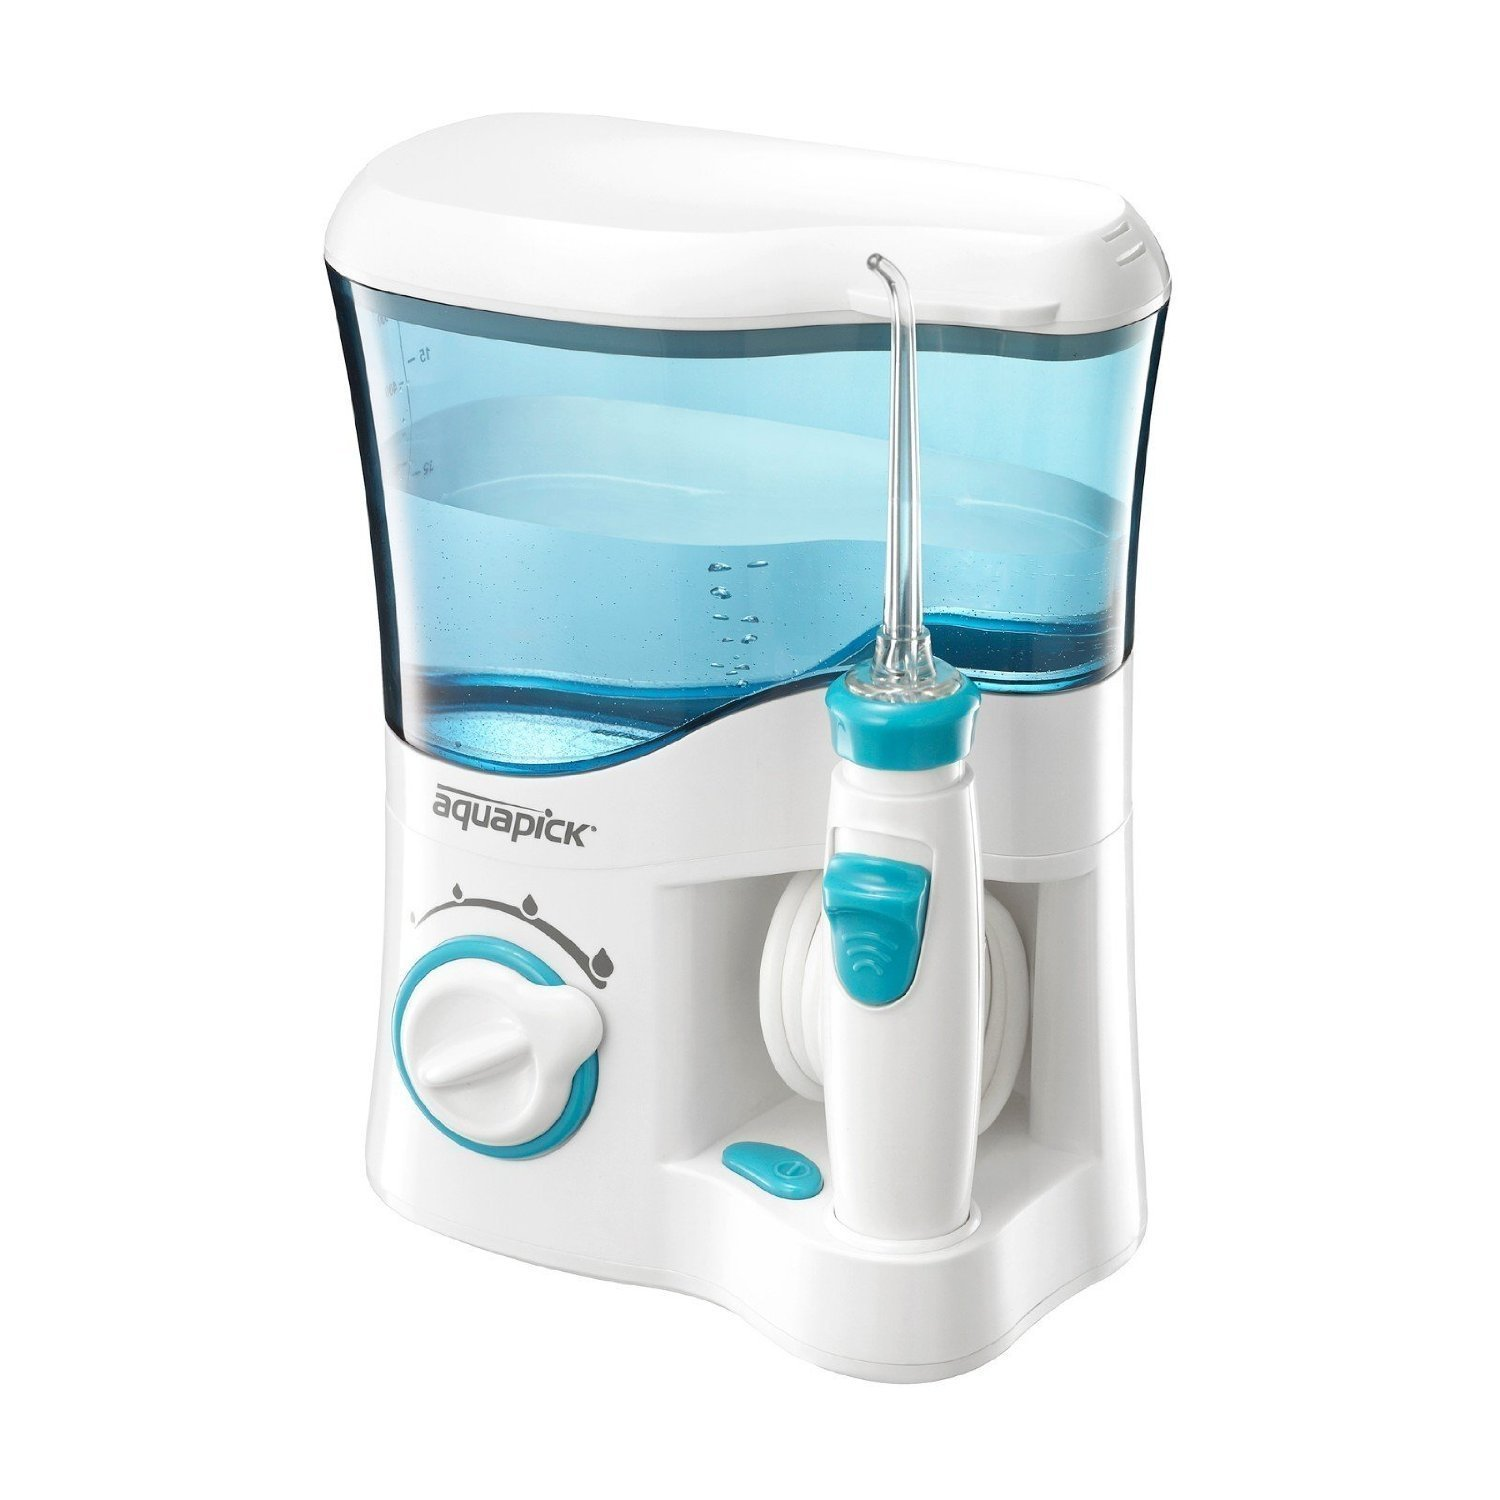 [Aquapick] New AQ-300 Oral Care Dental Irrigator Water Flosser Pressure Jet Air